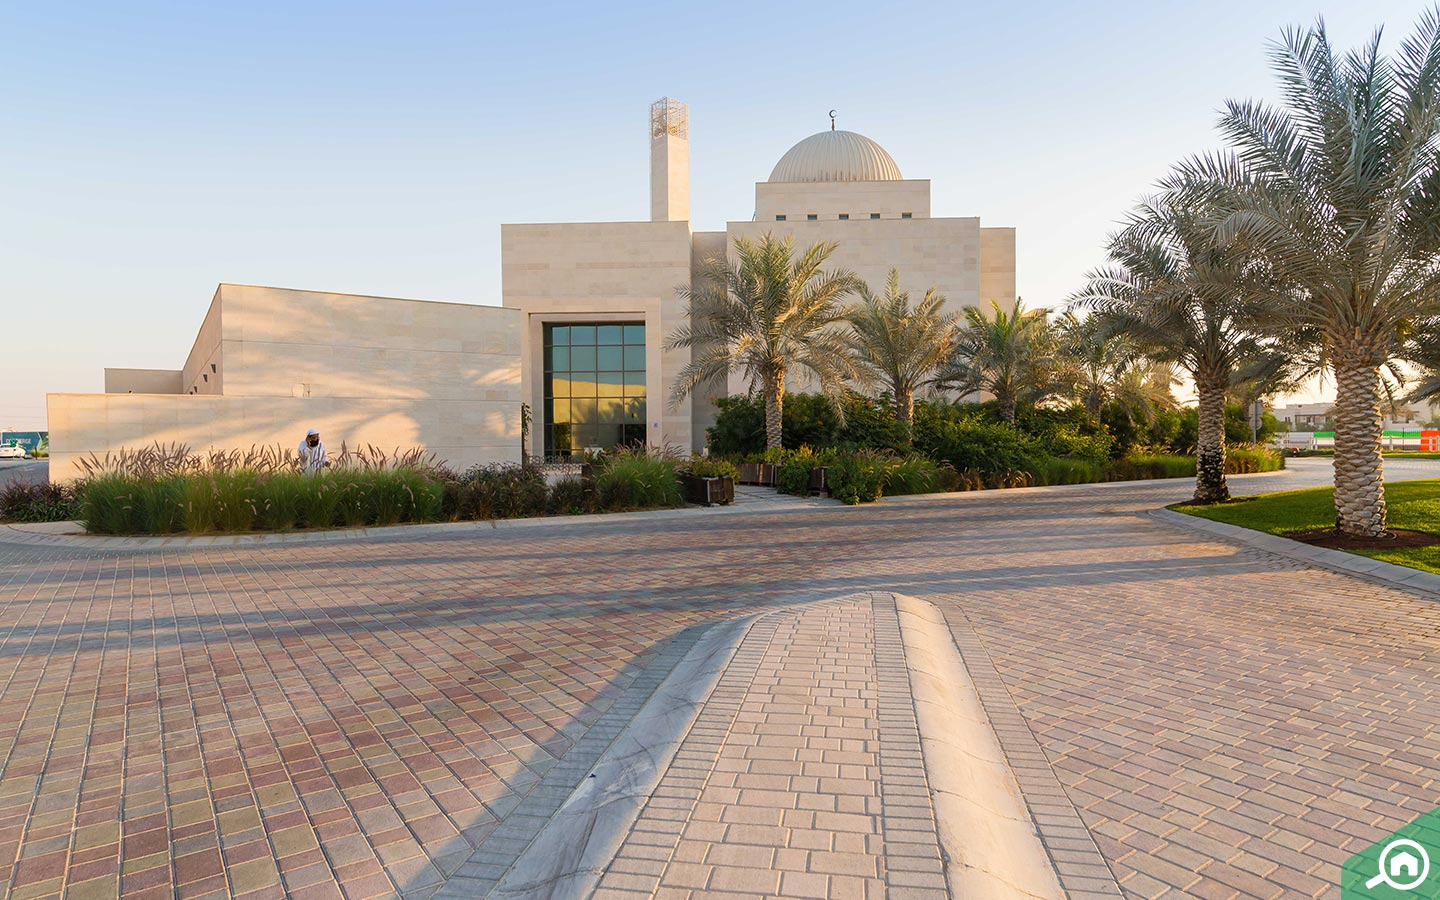 Mosque in The Sustainable City